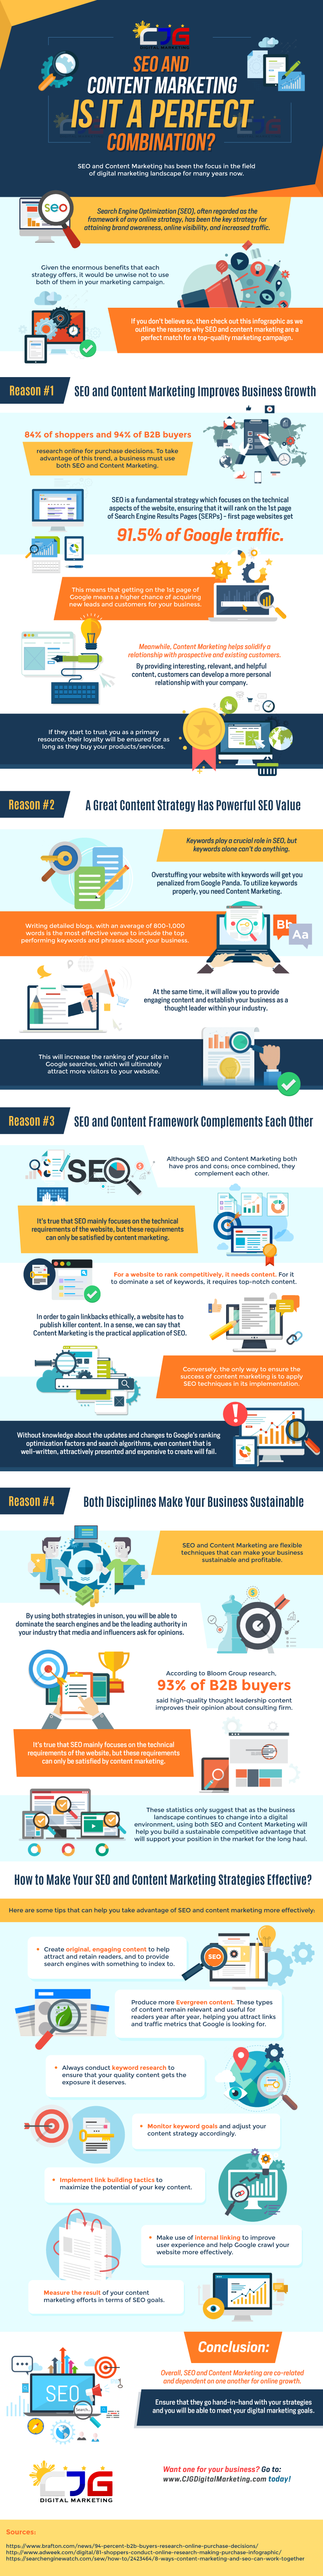 Analysis_–_Why_SEO_and_Content_Marketing_Makes_a_Good_Combination-01